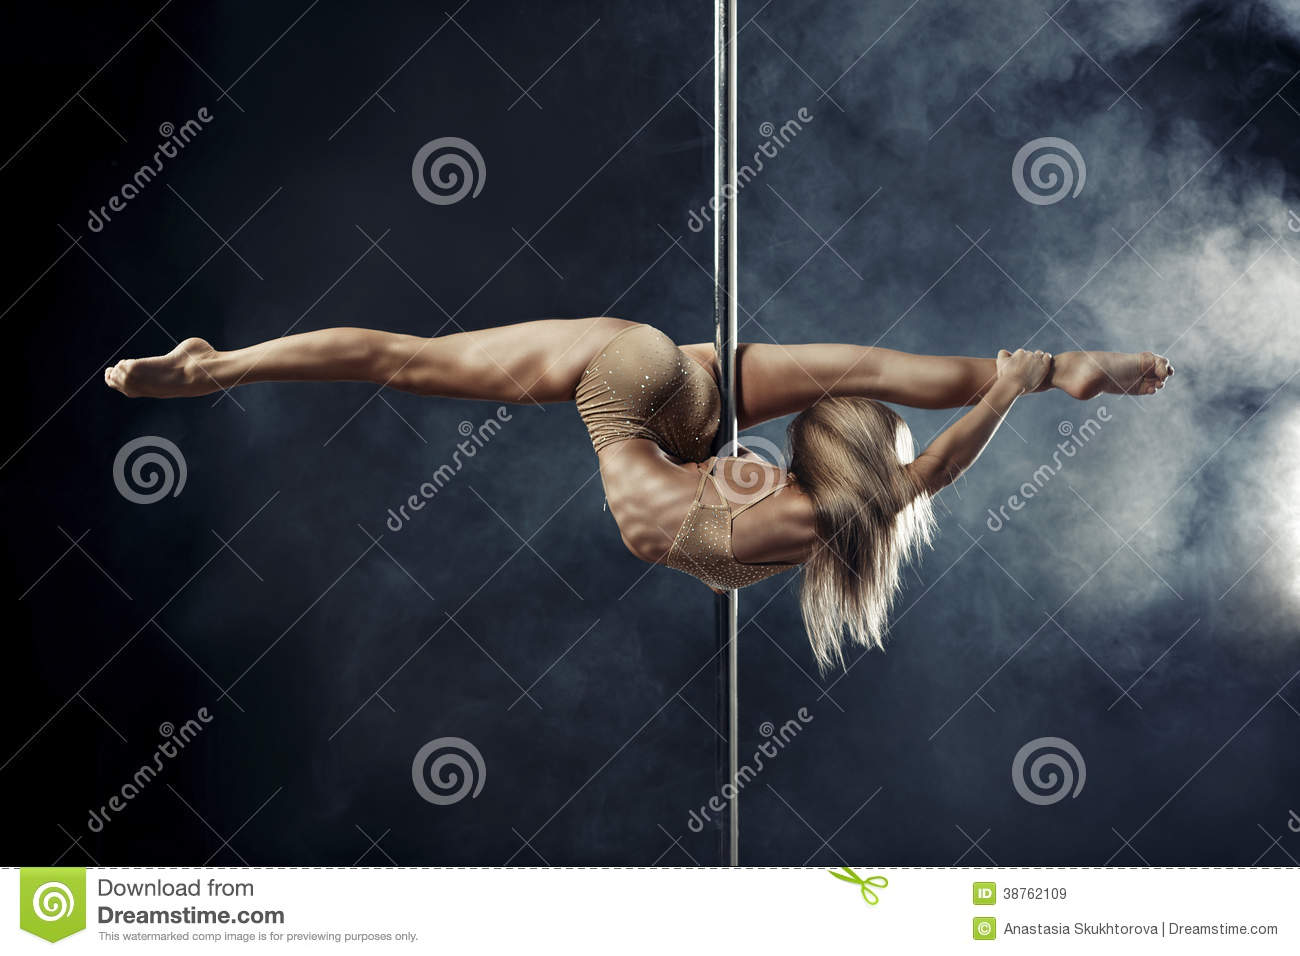 18 pole dance anastasia sokolova pole dance tricks new 2015 - 2 4